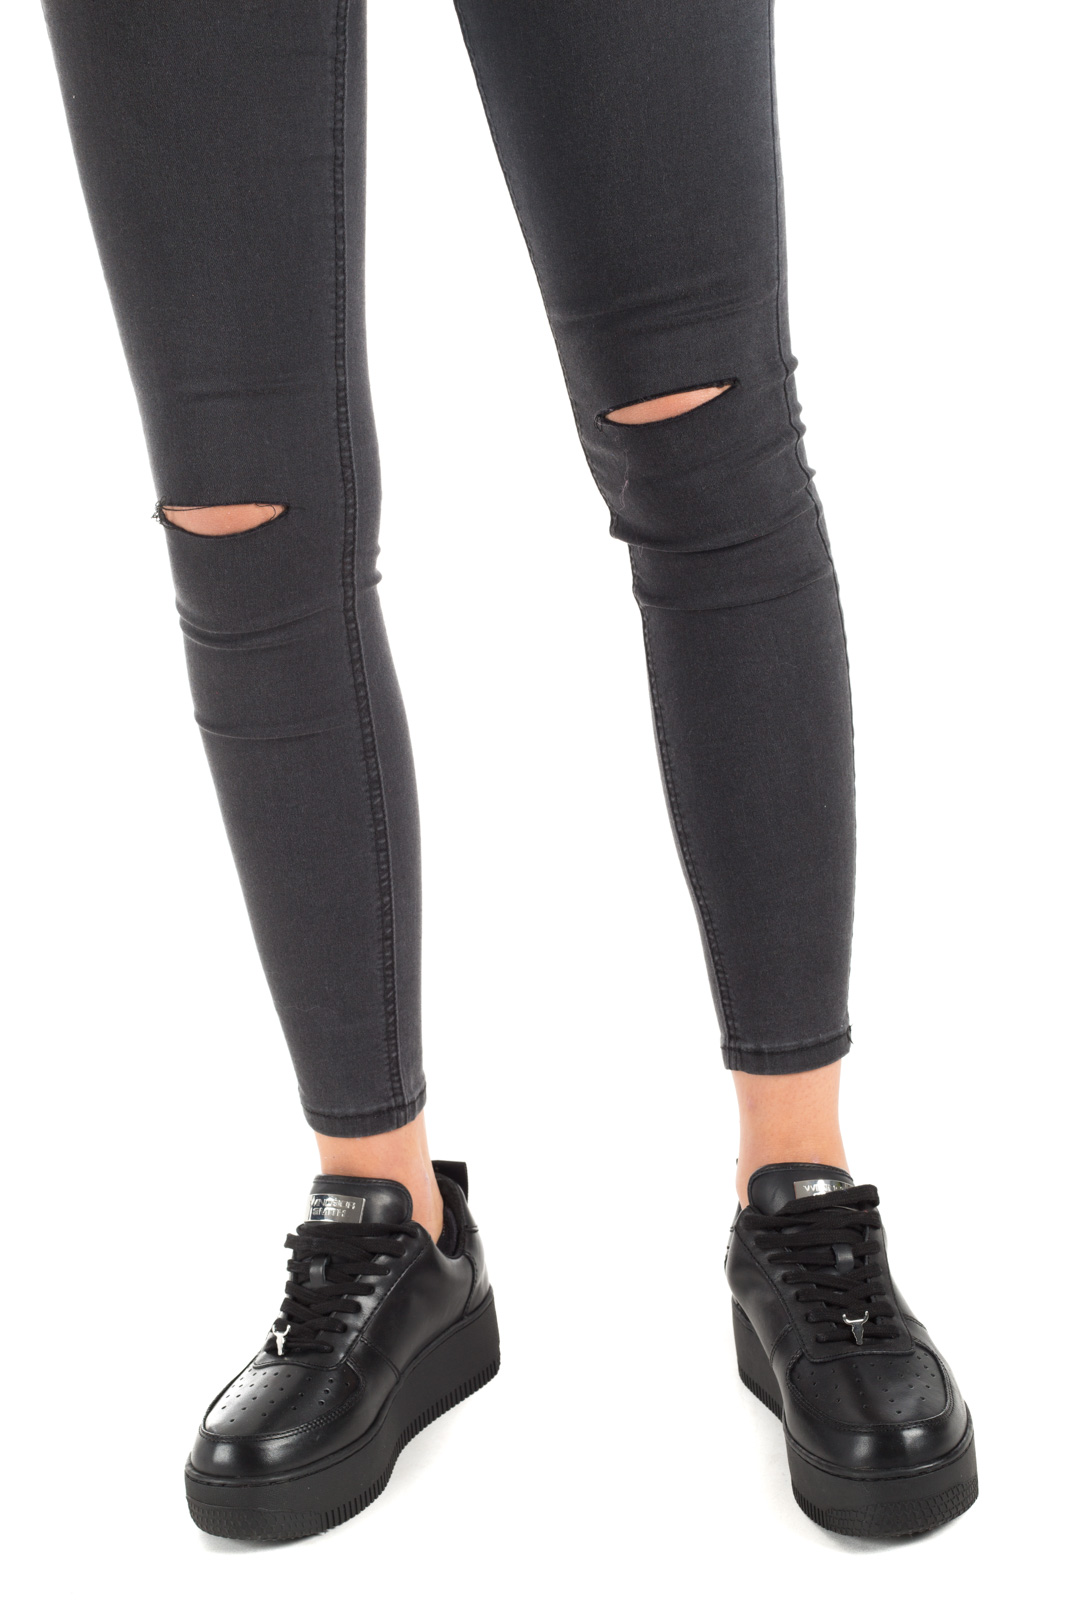 Glamorous - Black jeans with knee pads